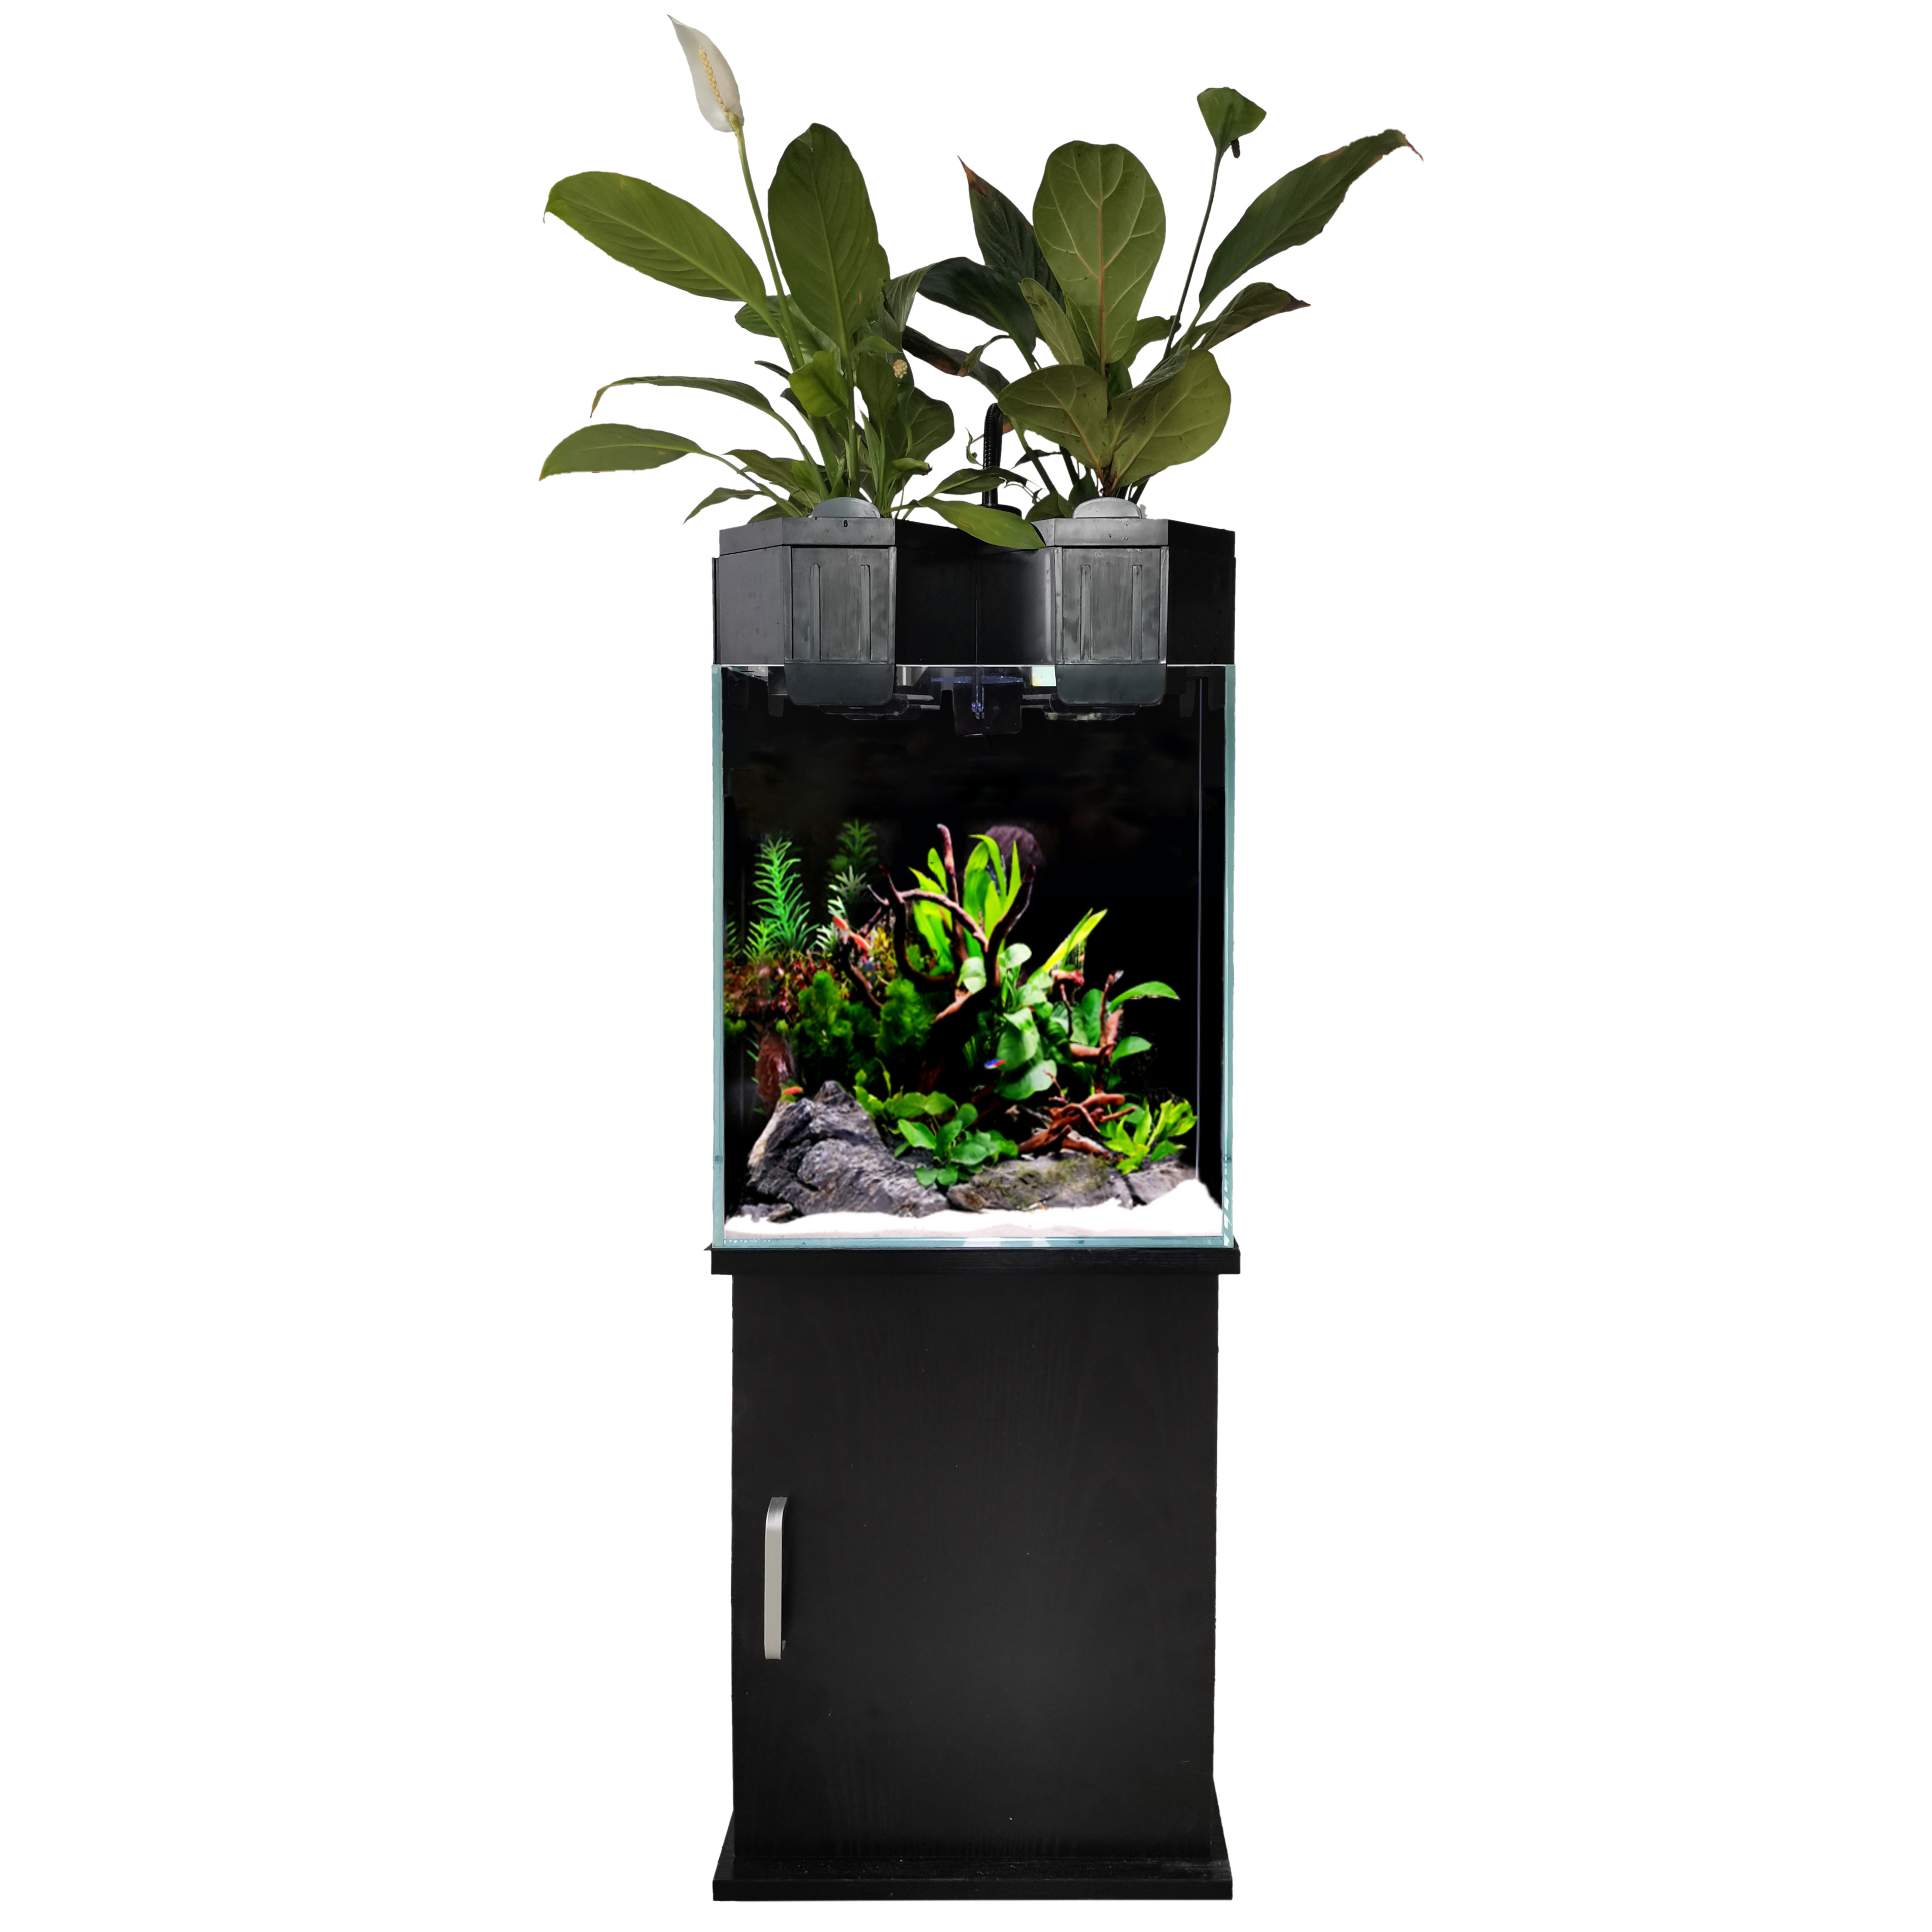 Aquaponic Fish Tank for Home